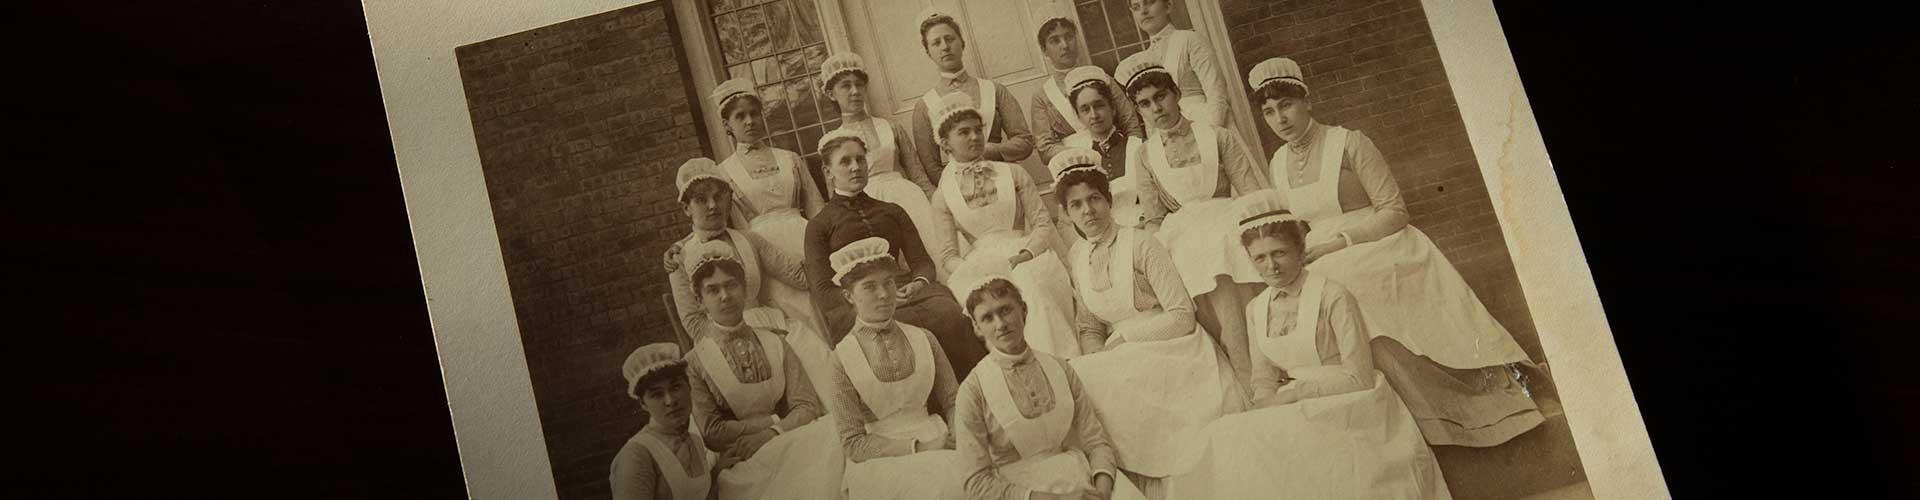 Historical photo of McLean's first nursing class